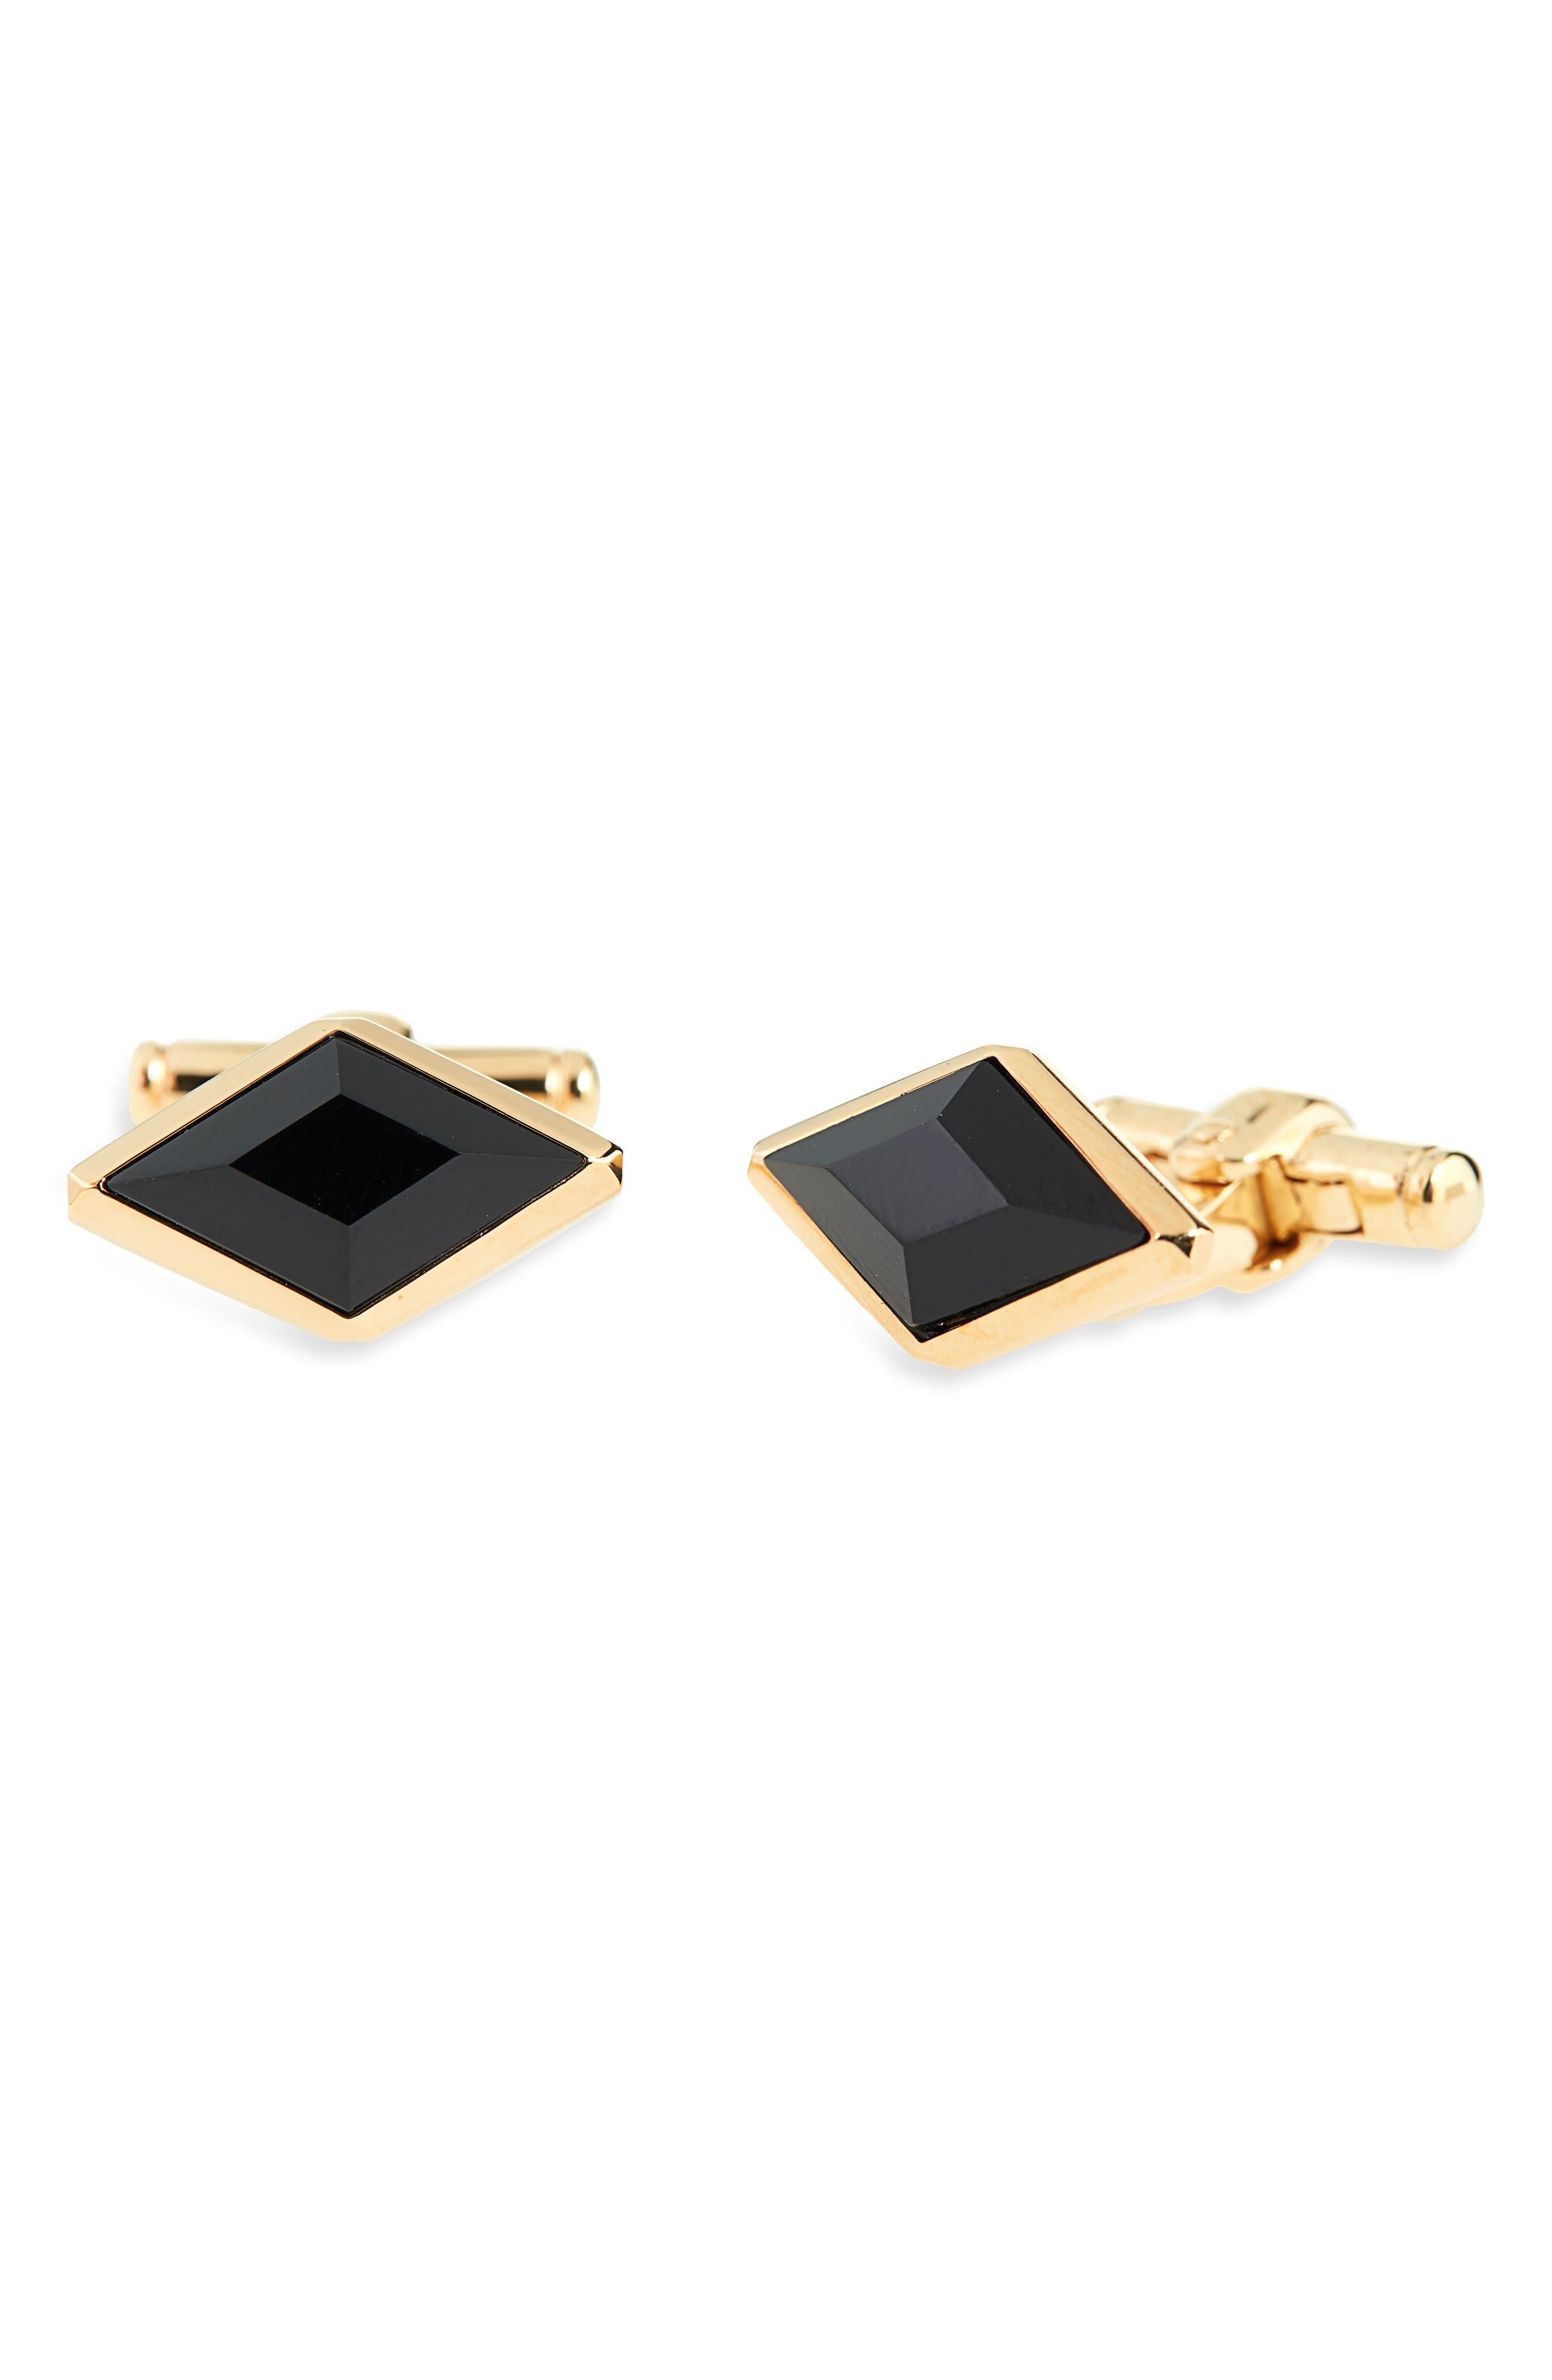 Onyx Cuff Links,                             Main thumbnail 1, color,                             GOLD